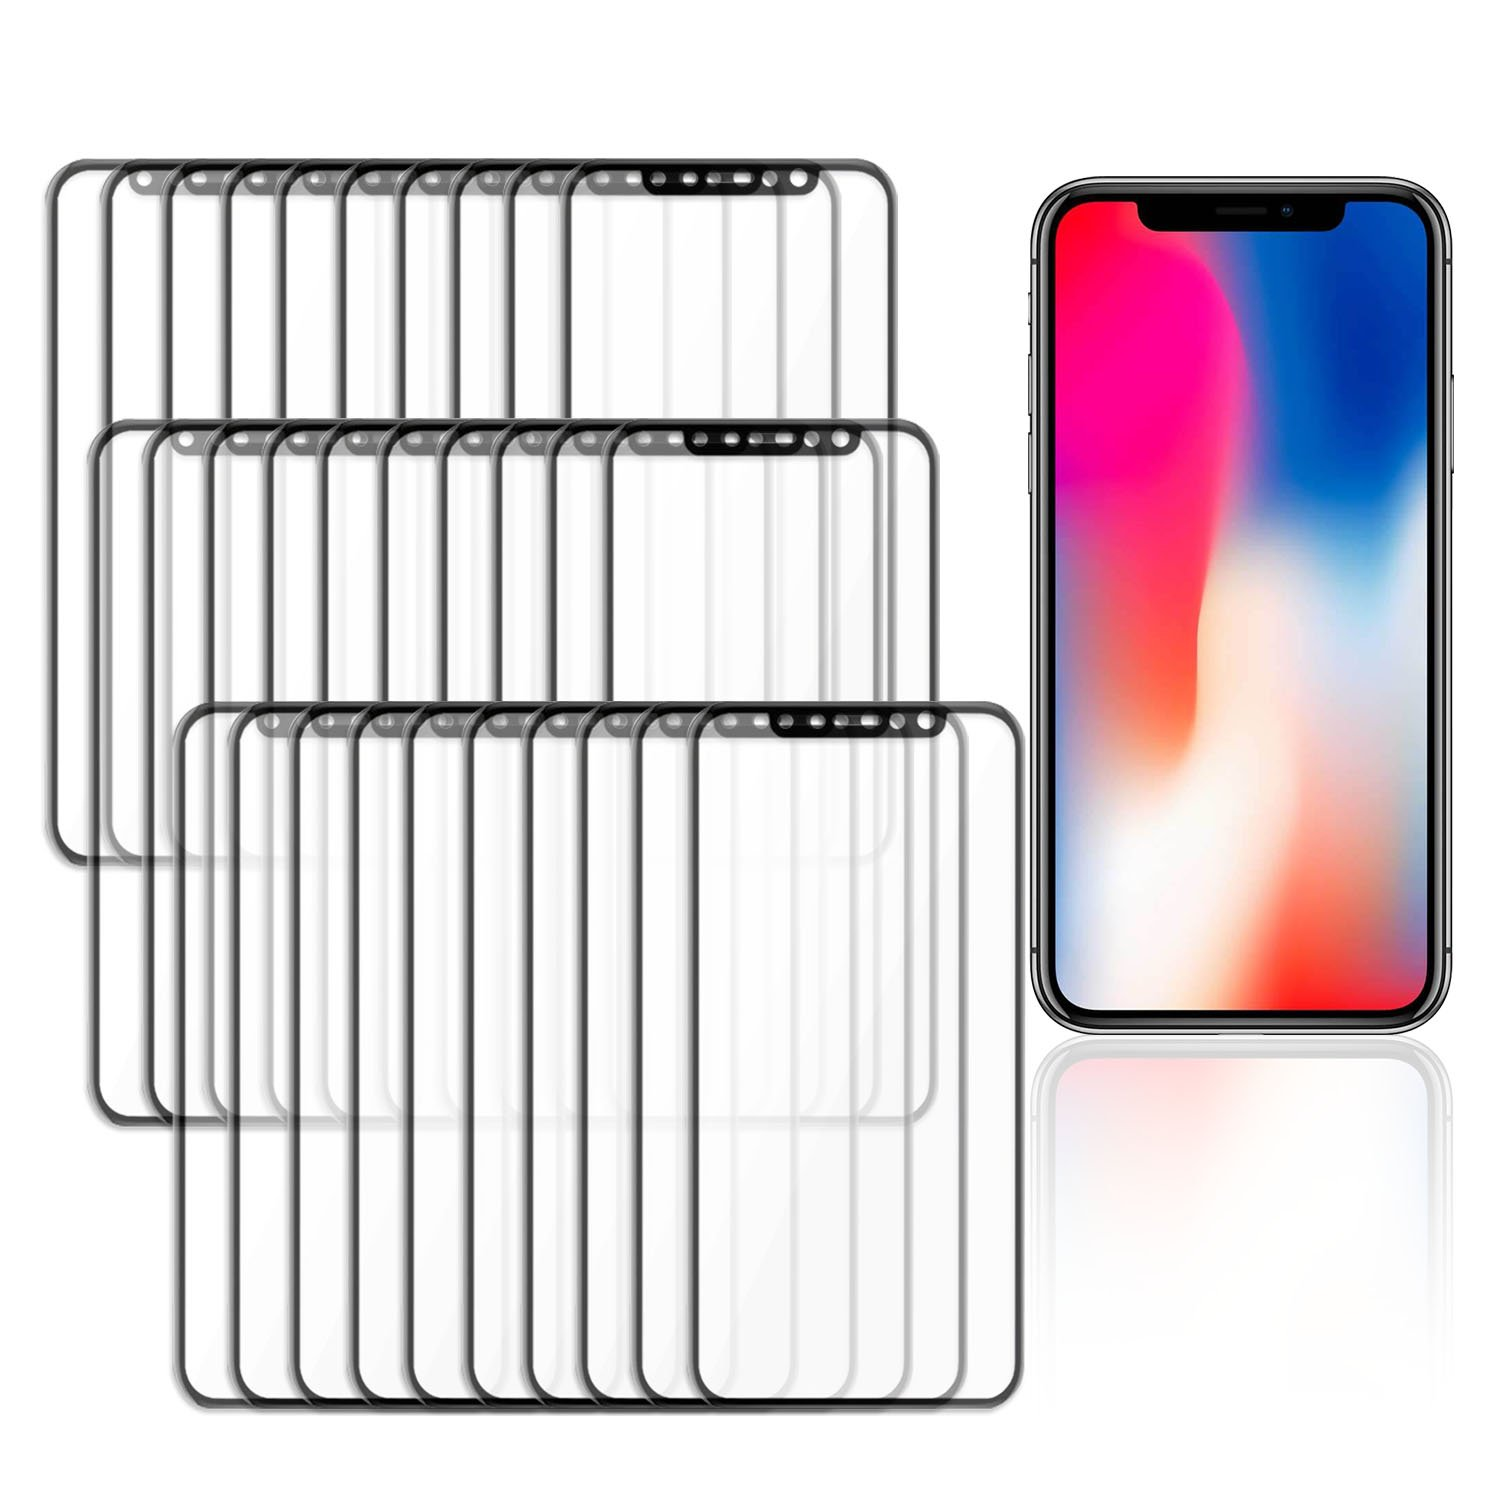 iPhone X / 10 Screen Protector [30 Pack] 3D Tempered Glass Film, Smudge Free, Scratch-Resistant, Anti-Oil pollution, 9H Hardness, Full Edge Cover, Easy Installation, HD High Definition by TortugaArmor